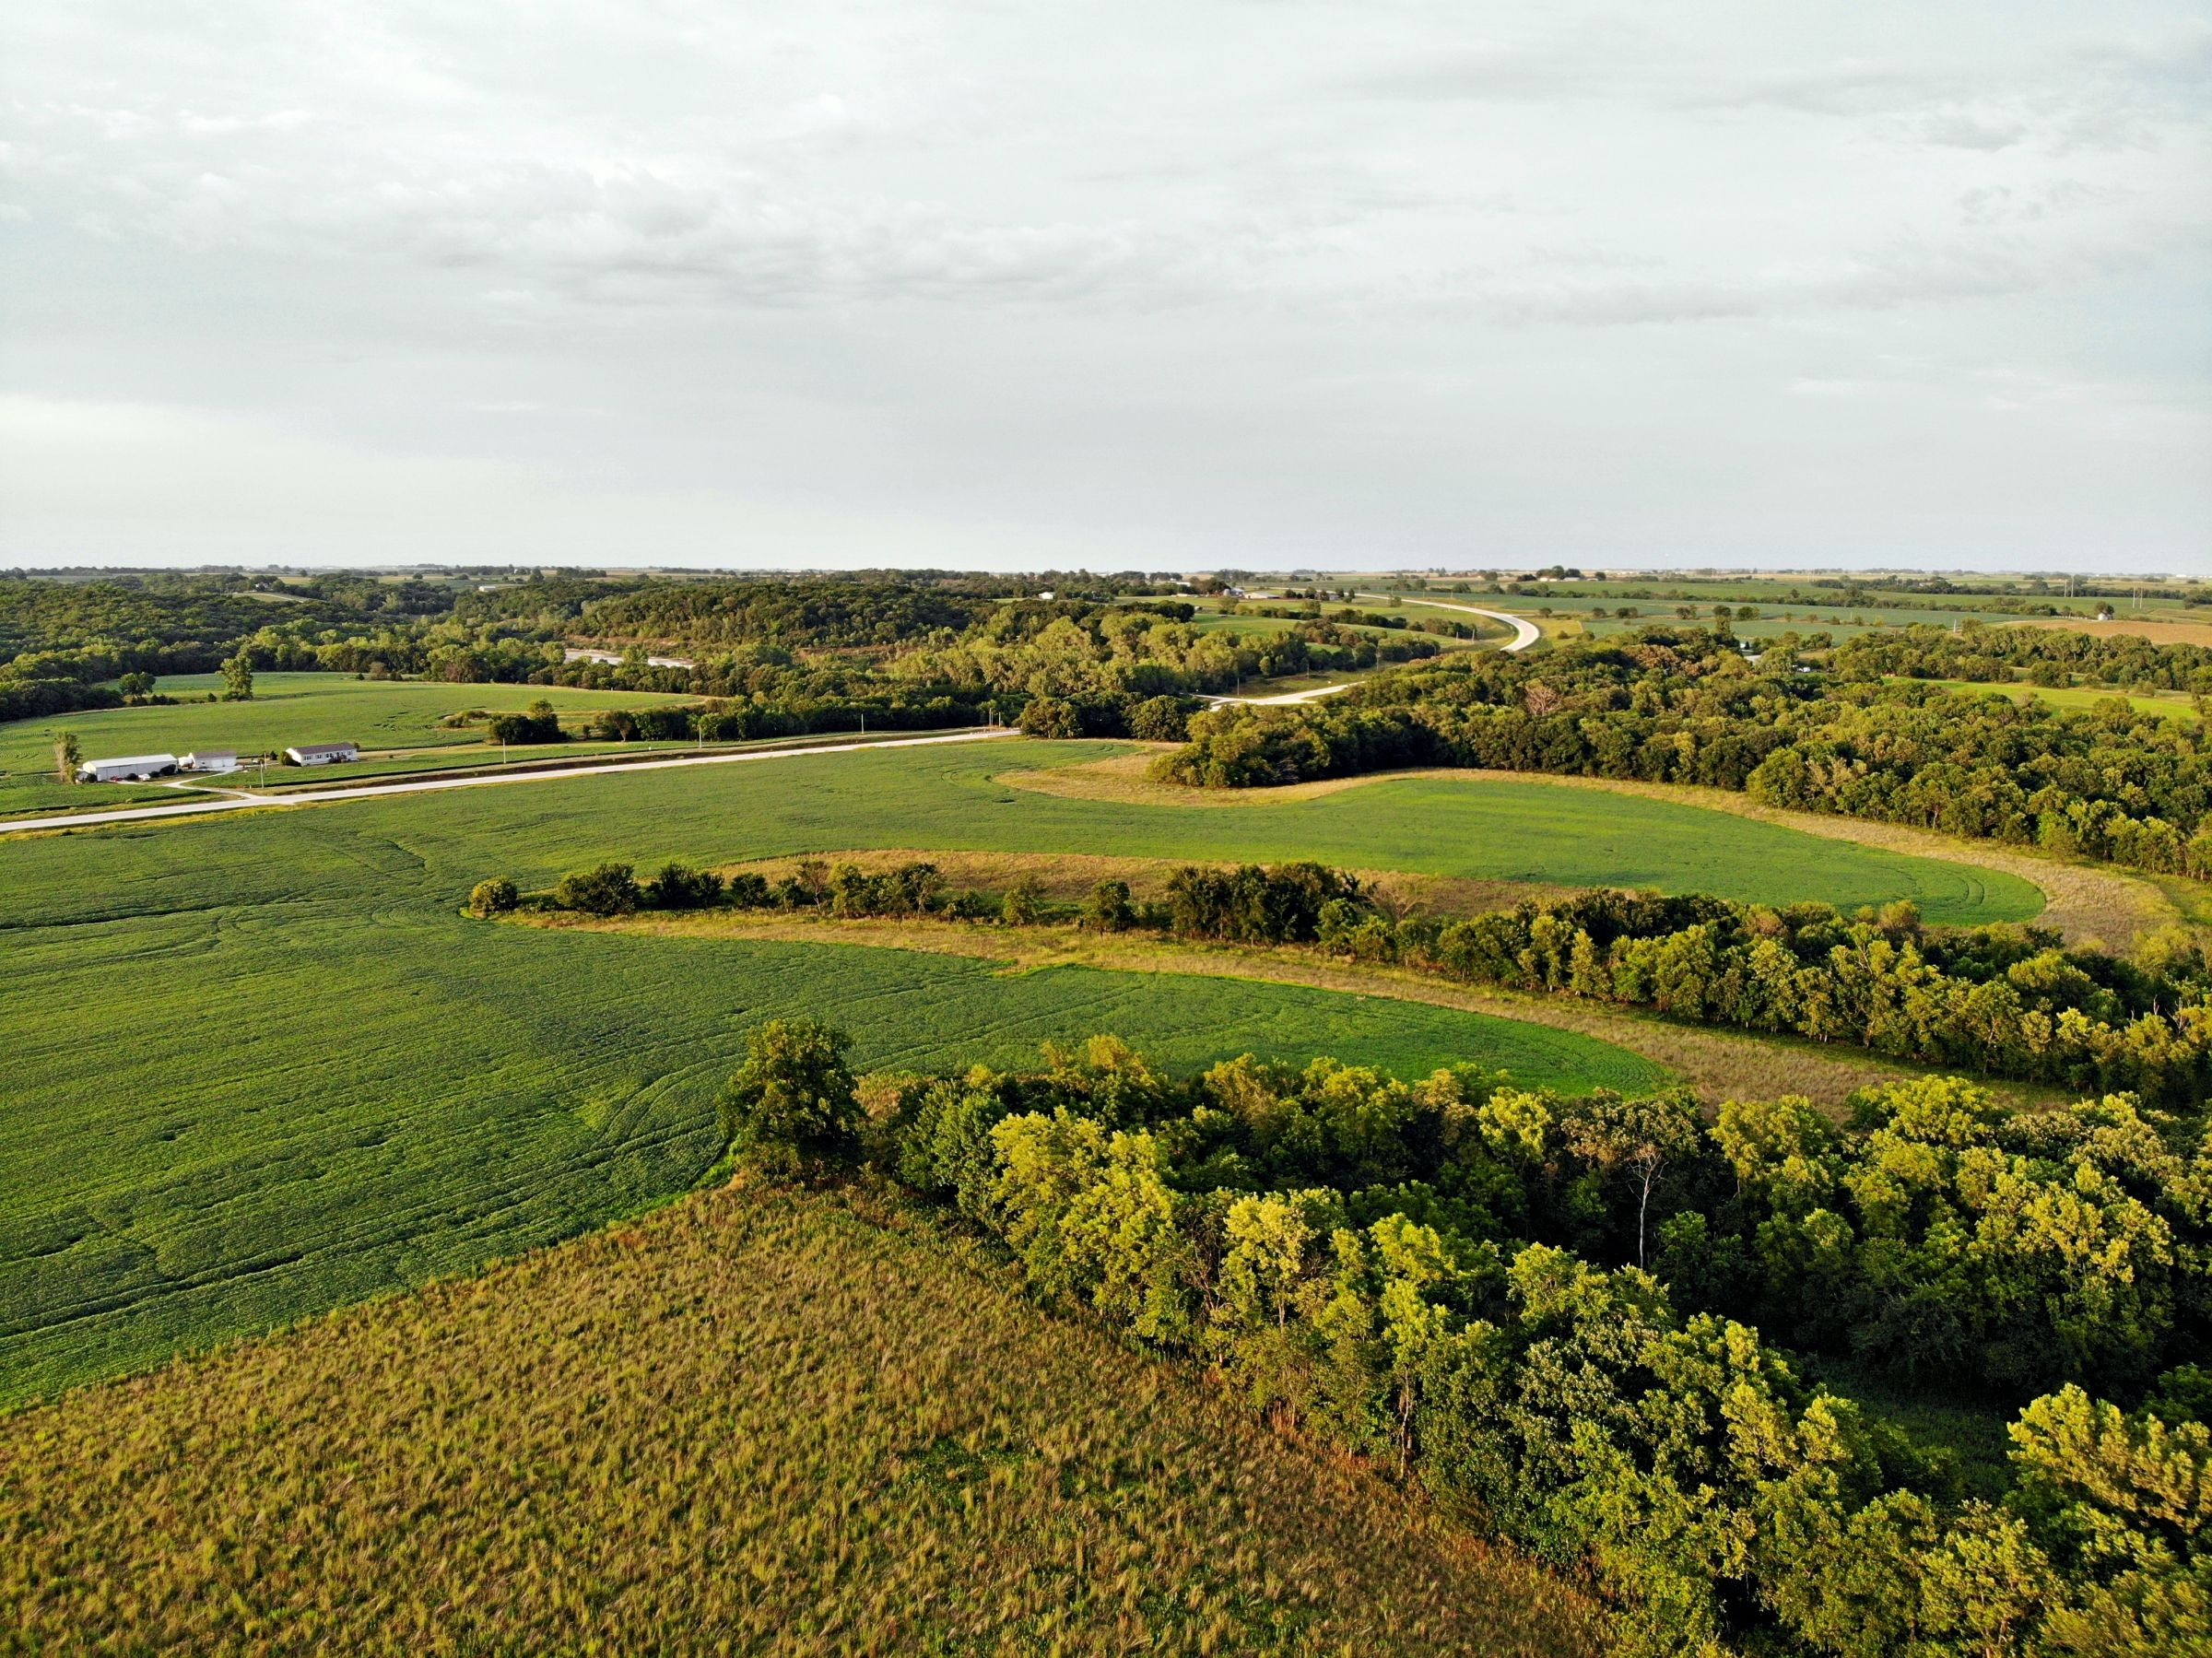 land-madison-county-iowa-123-acres-listing-number-15122-4-2020-08-24-022309.jpg